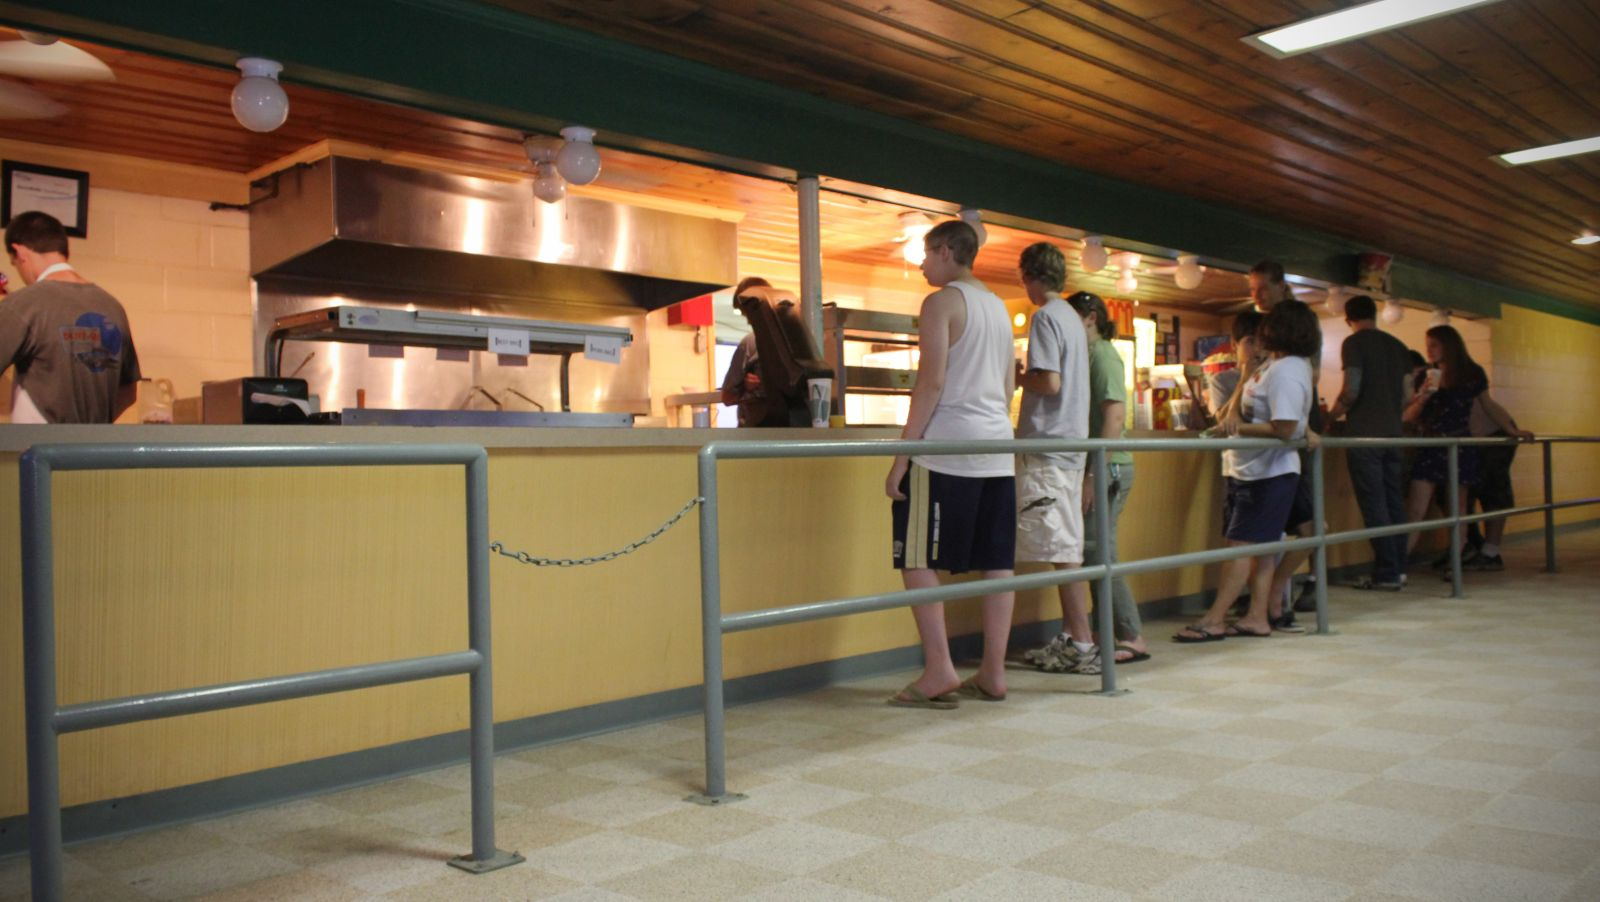 People wait in line at the concession stand at Cumberland Drive-In Theatre in Newville